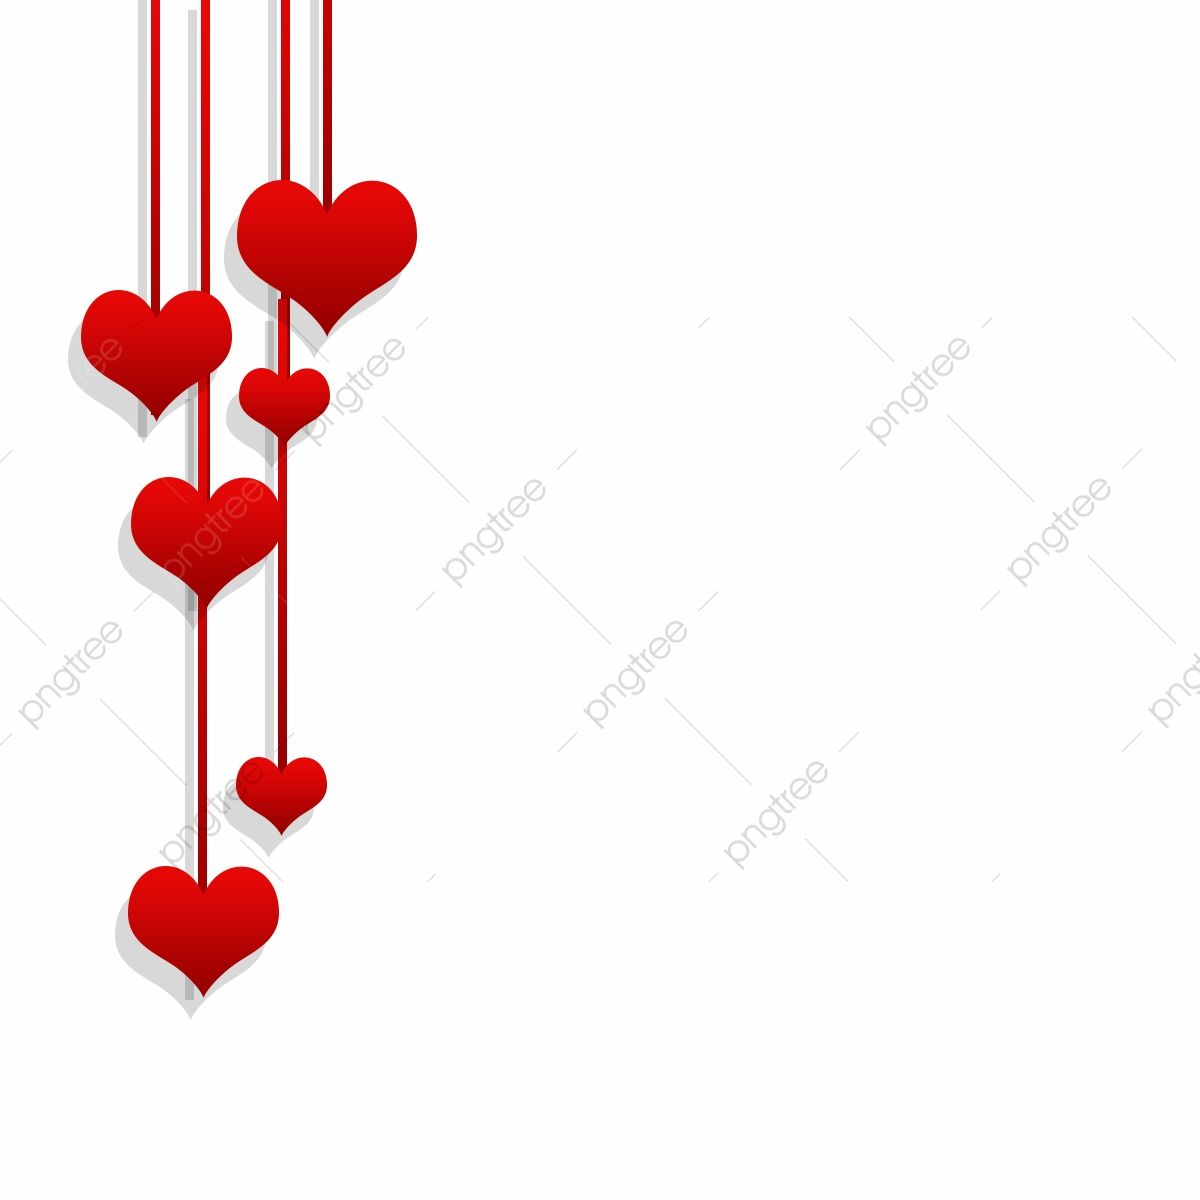 Valentines Day Red Hearts Hanging Valentines Valentines Day Background Chinese Valentine S Day